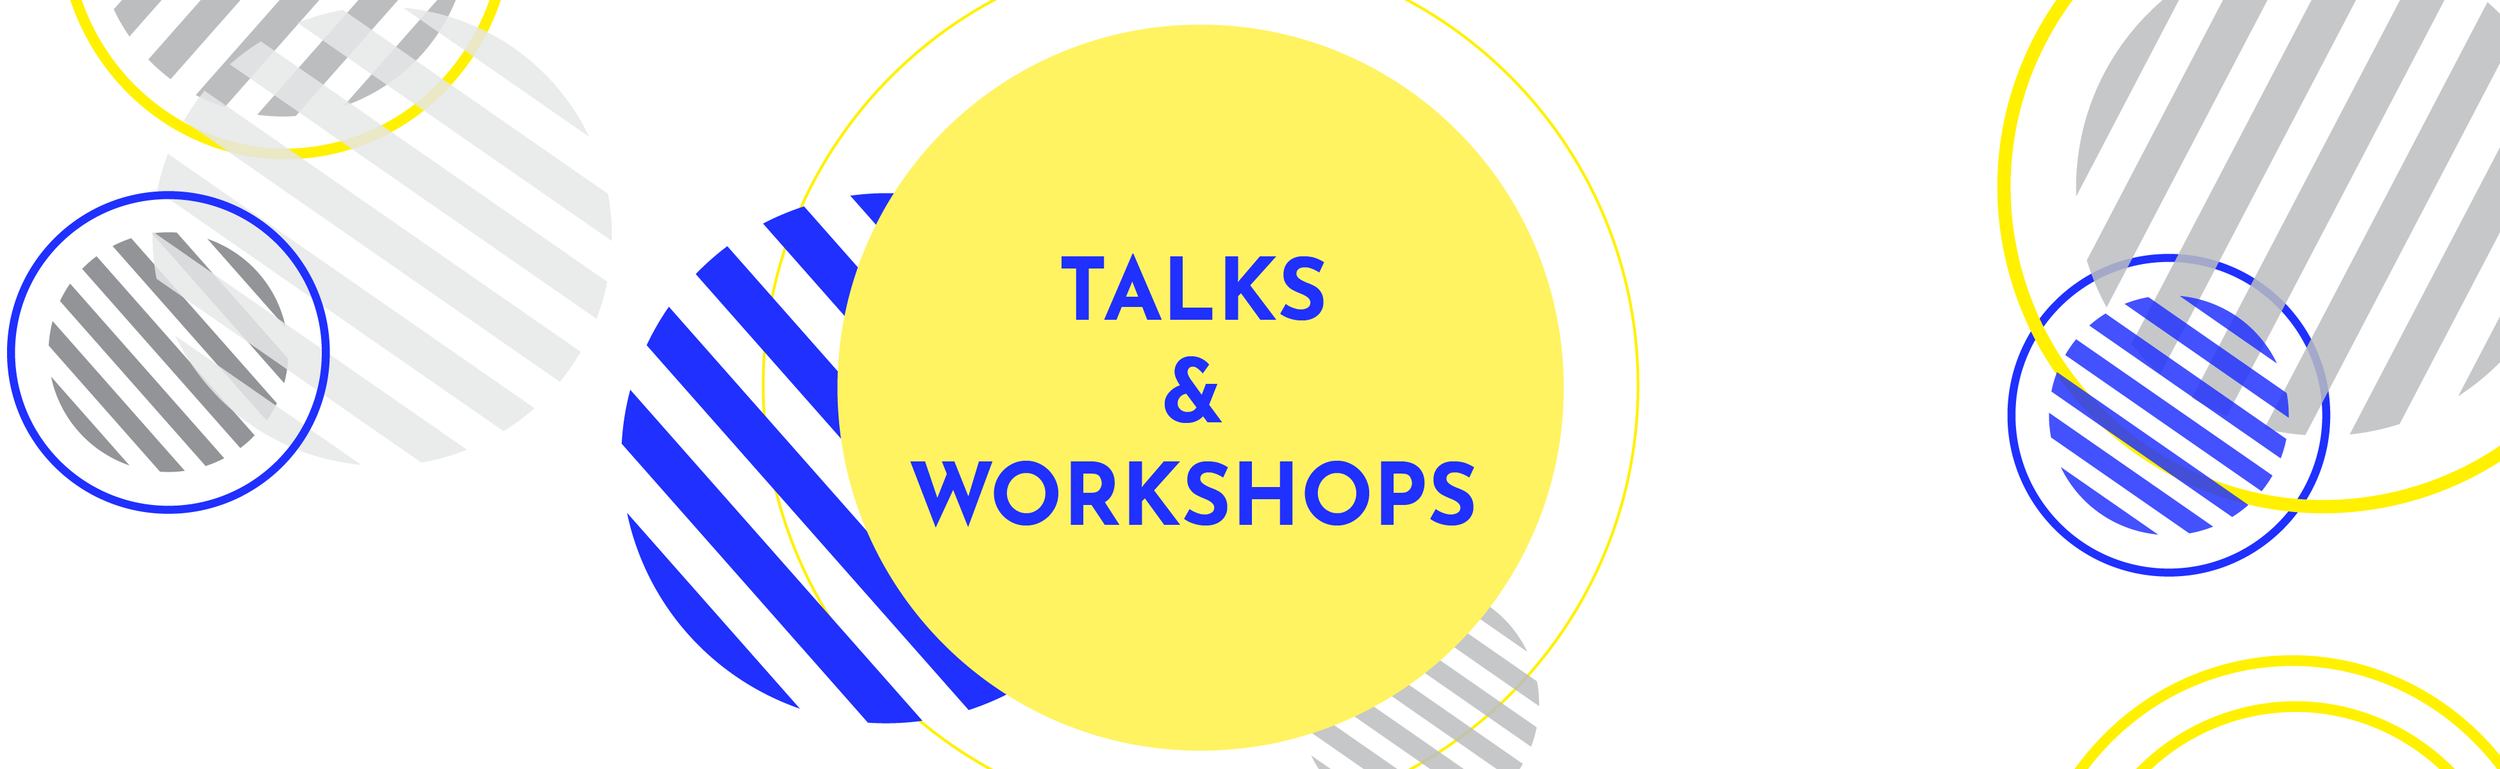 BE PART OF OUR EVENTS, TALKS AND WORKSHOPS